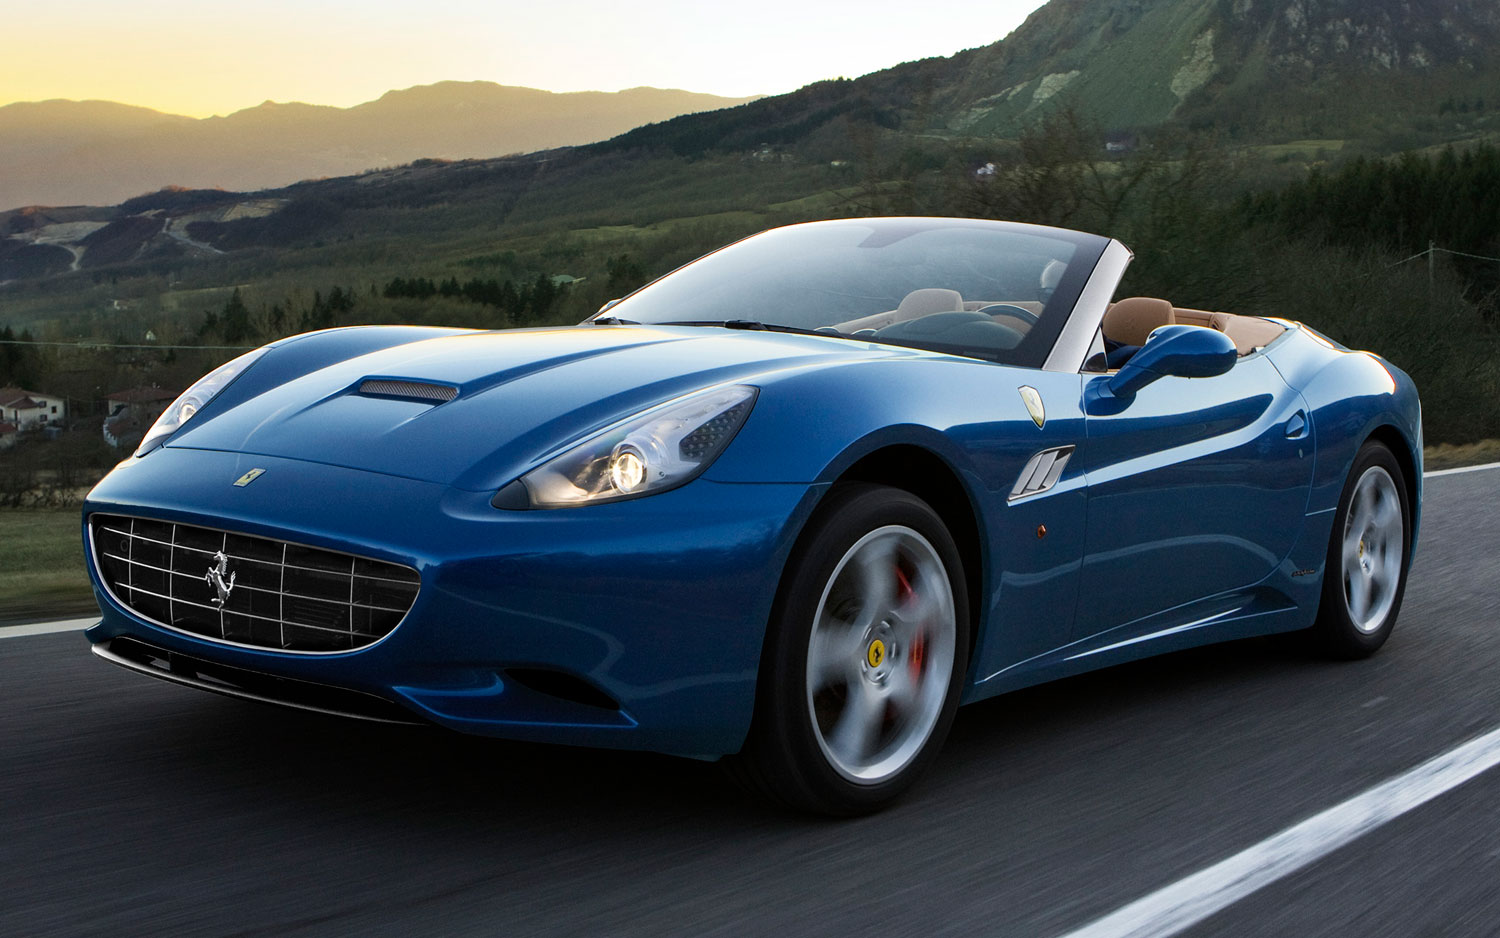 2013 Ferrari California Front Three Quarters View1